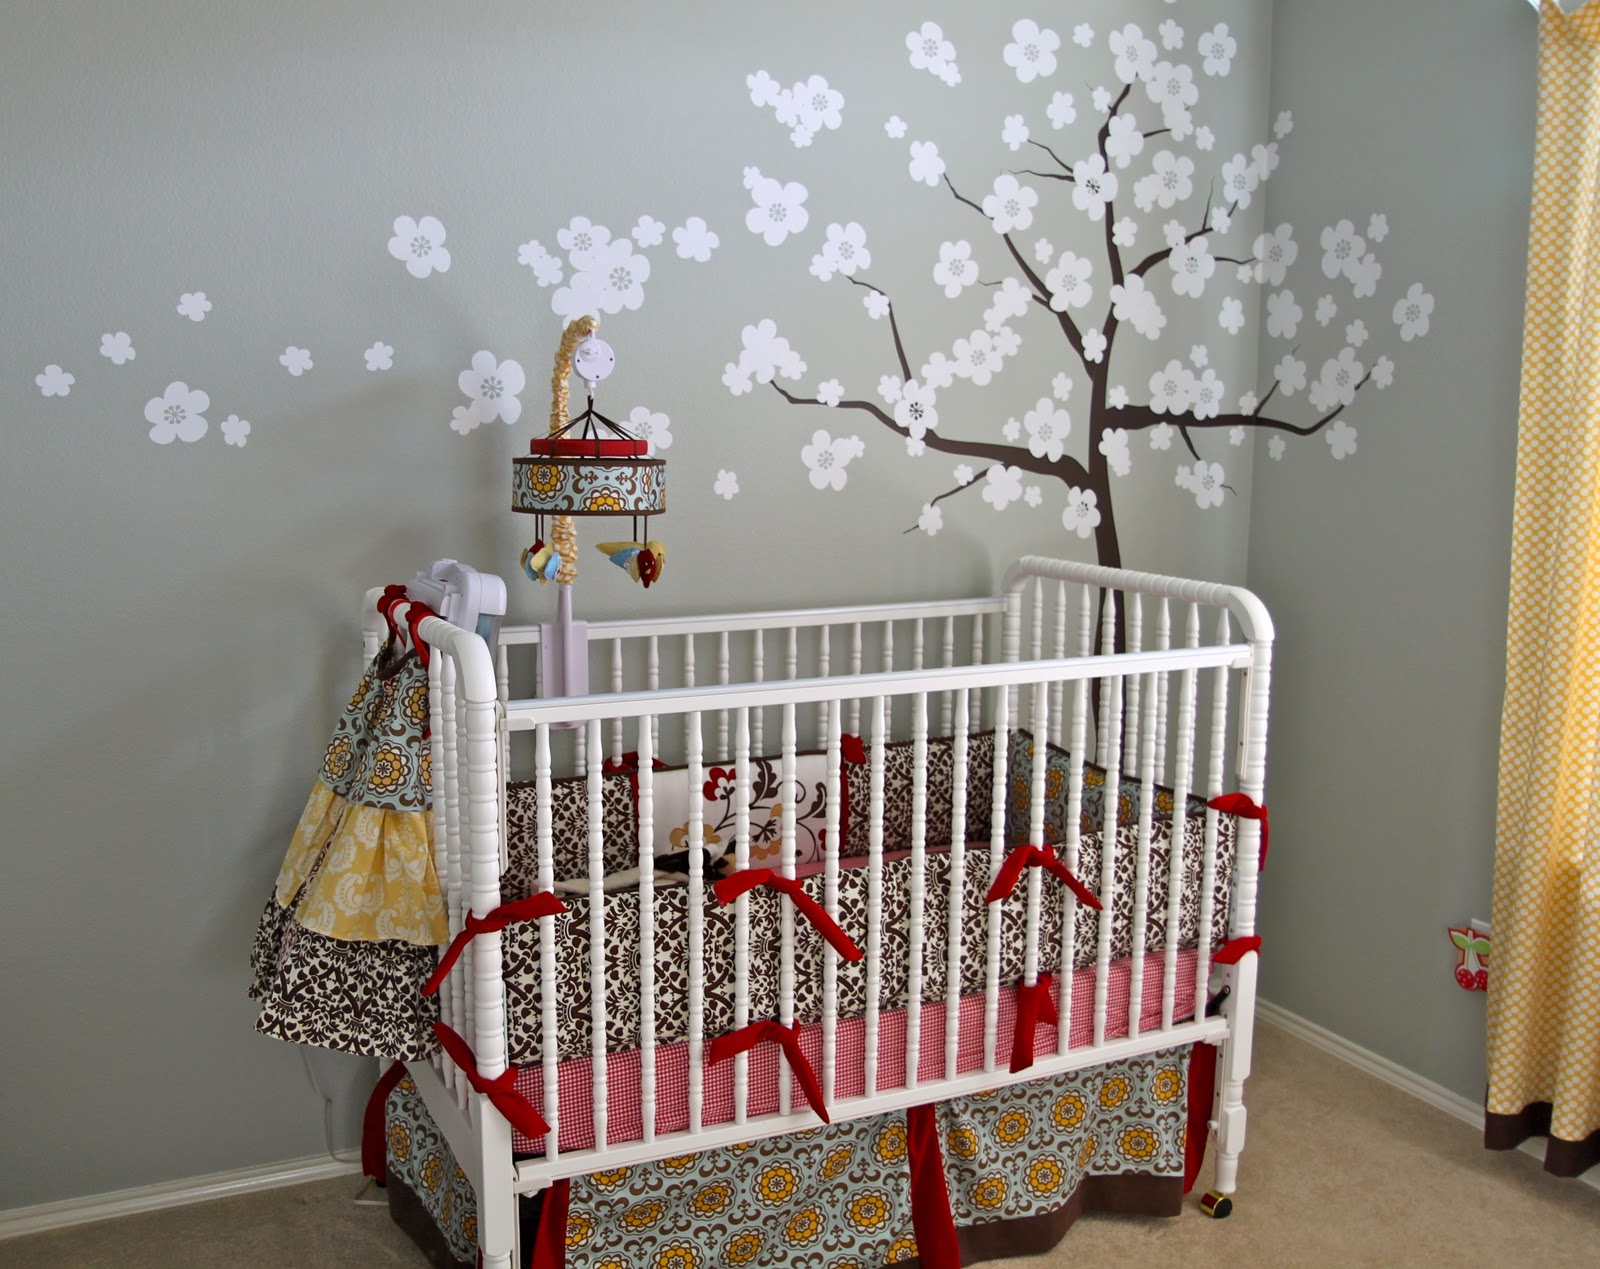 Baby nursery it 39 s quirky and so cute design dazzle for Baby nursery decoration ideas